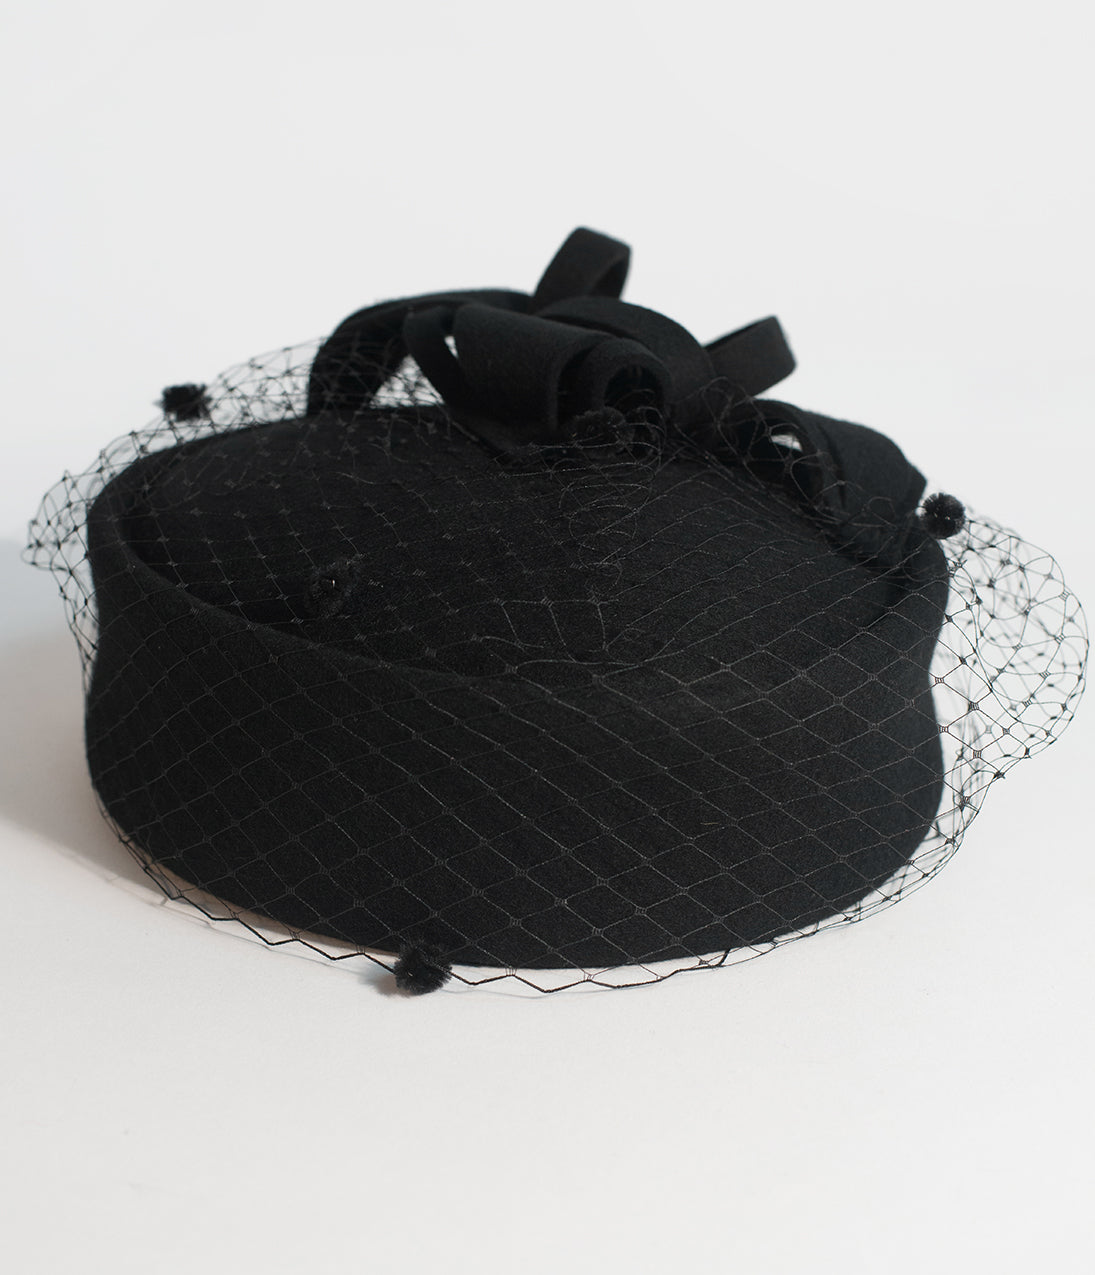 Ladies Tea Party Hats- Victorian to 1950s styles Unique Vintage Black Wool Netted Pillbox Hat $62.00 AT vintagedancer.com